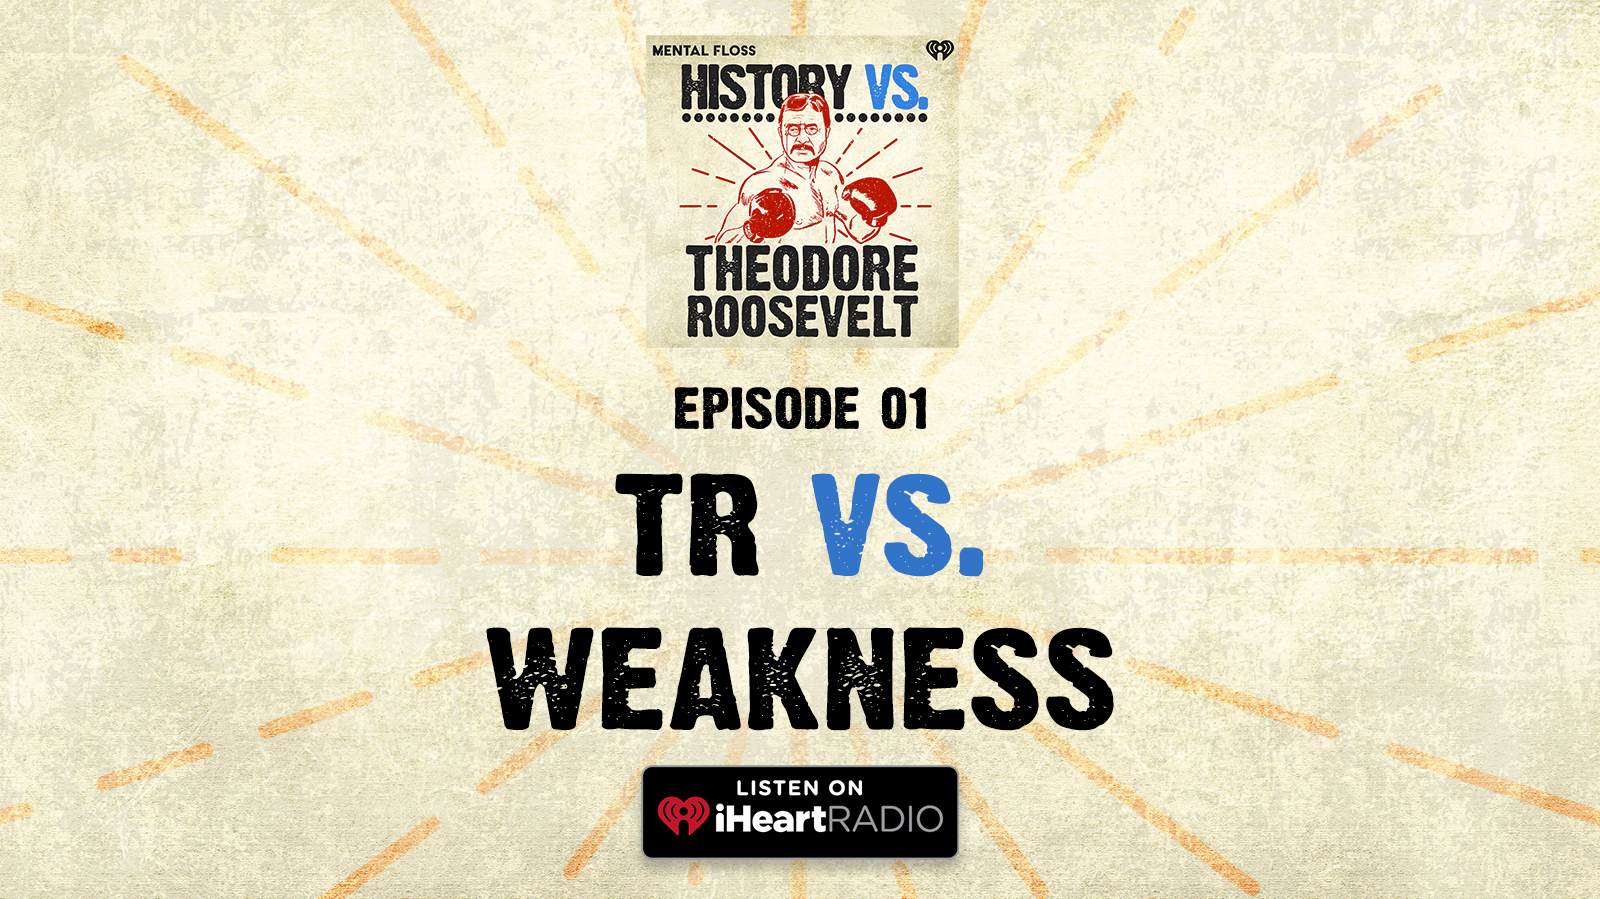 History Vs. Episode 1: TR Vs. Weakness